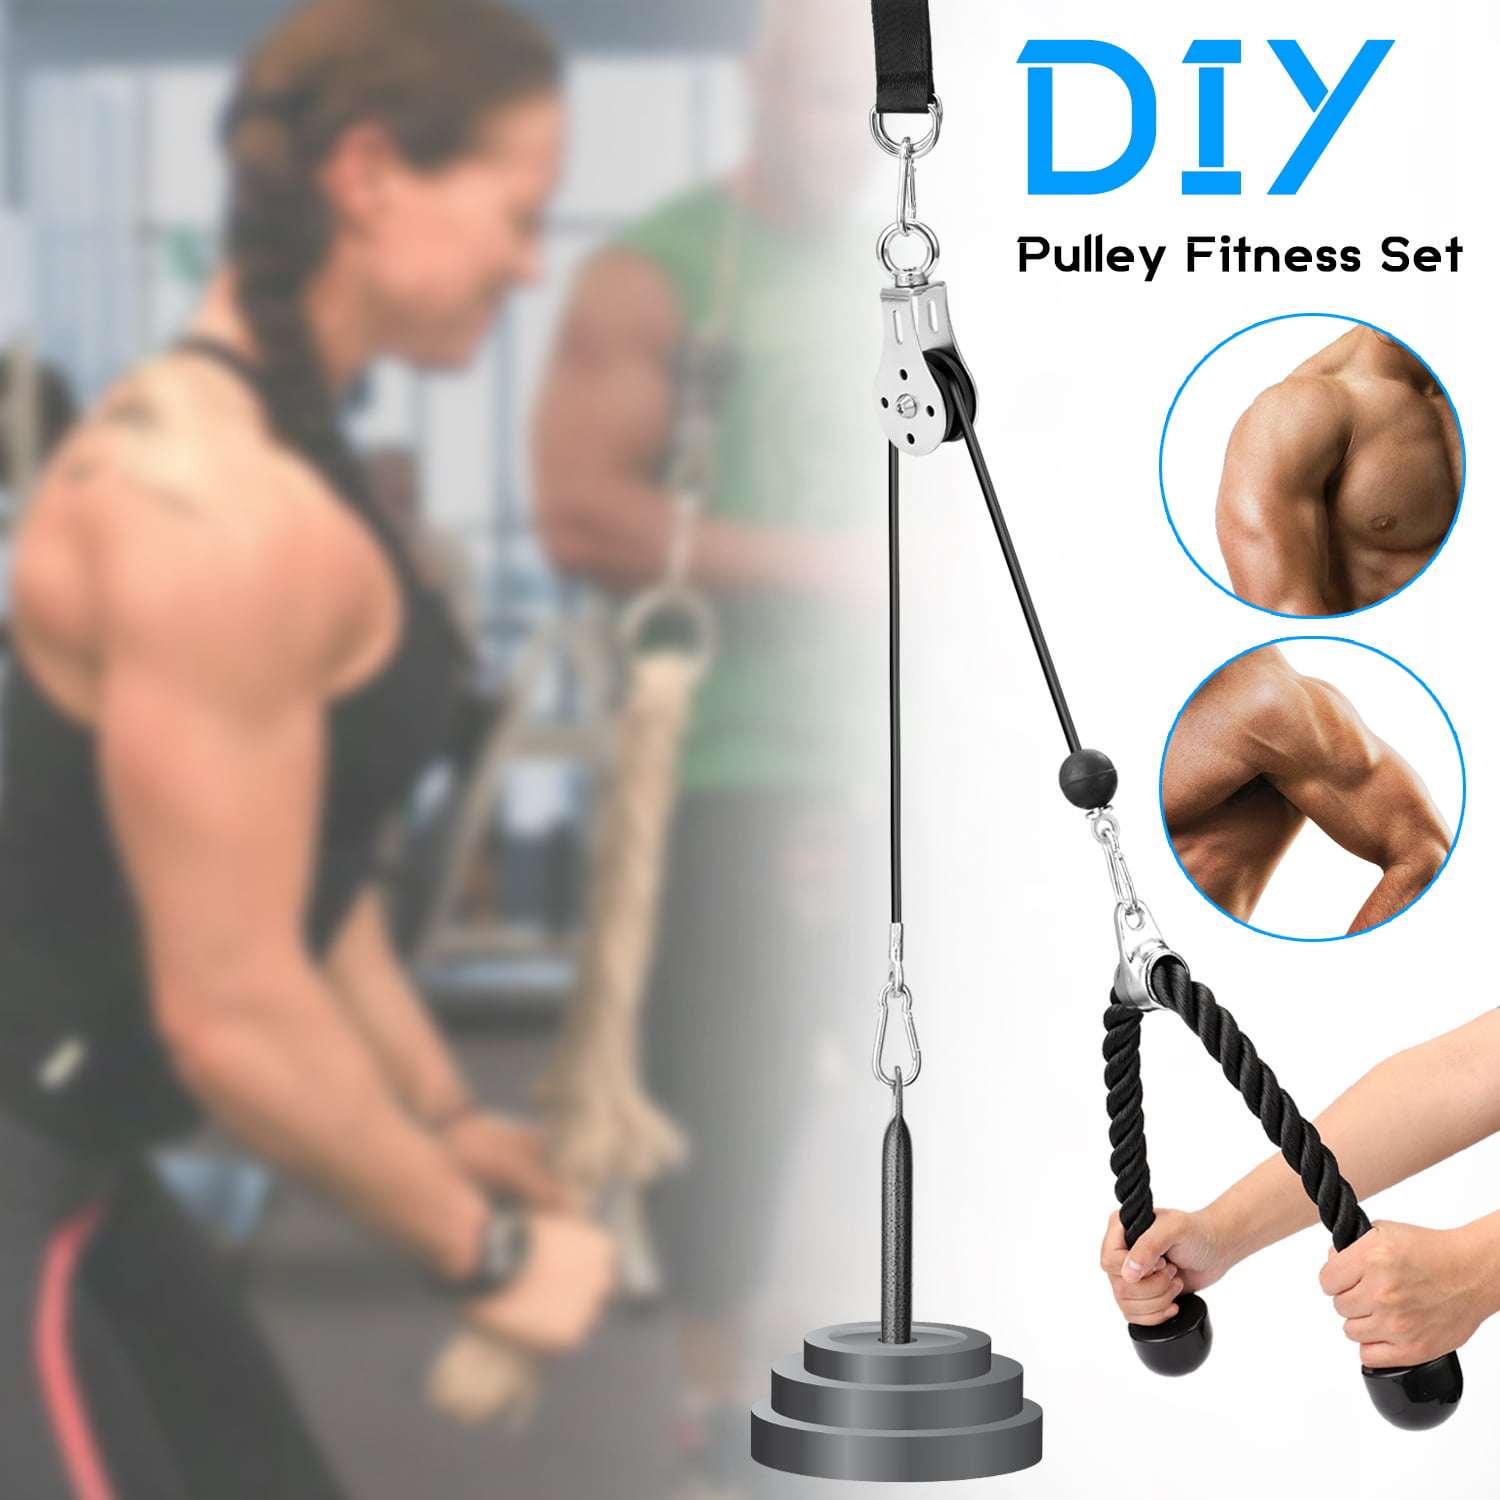 2Pcs Heavy Duty Fitness DIY Pulley Cable Machine Attachment Arm Forearm Hand